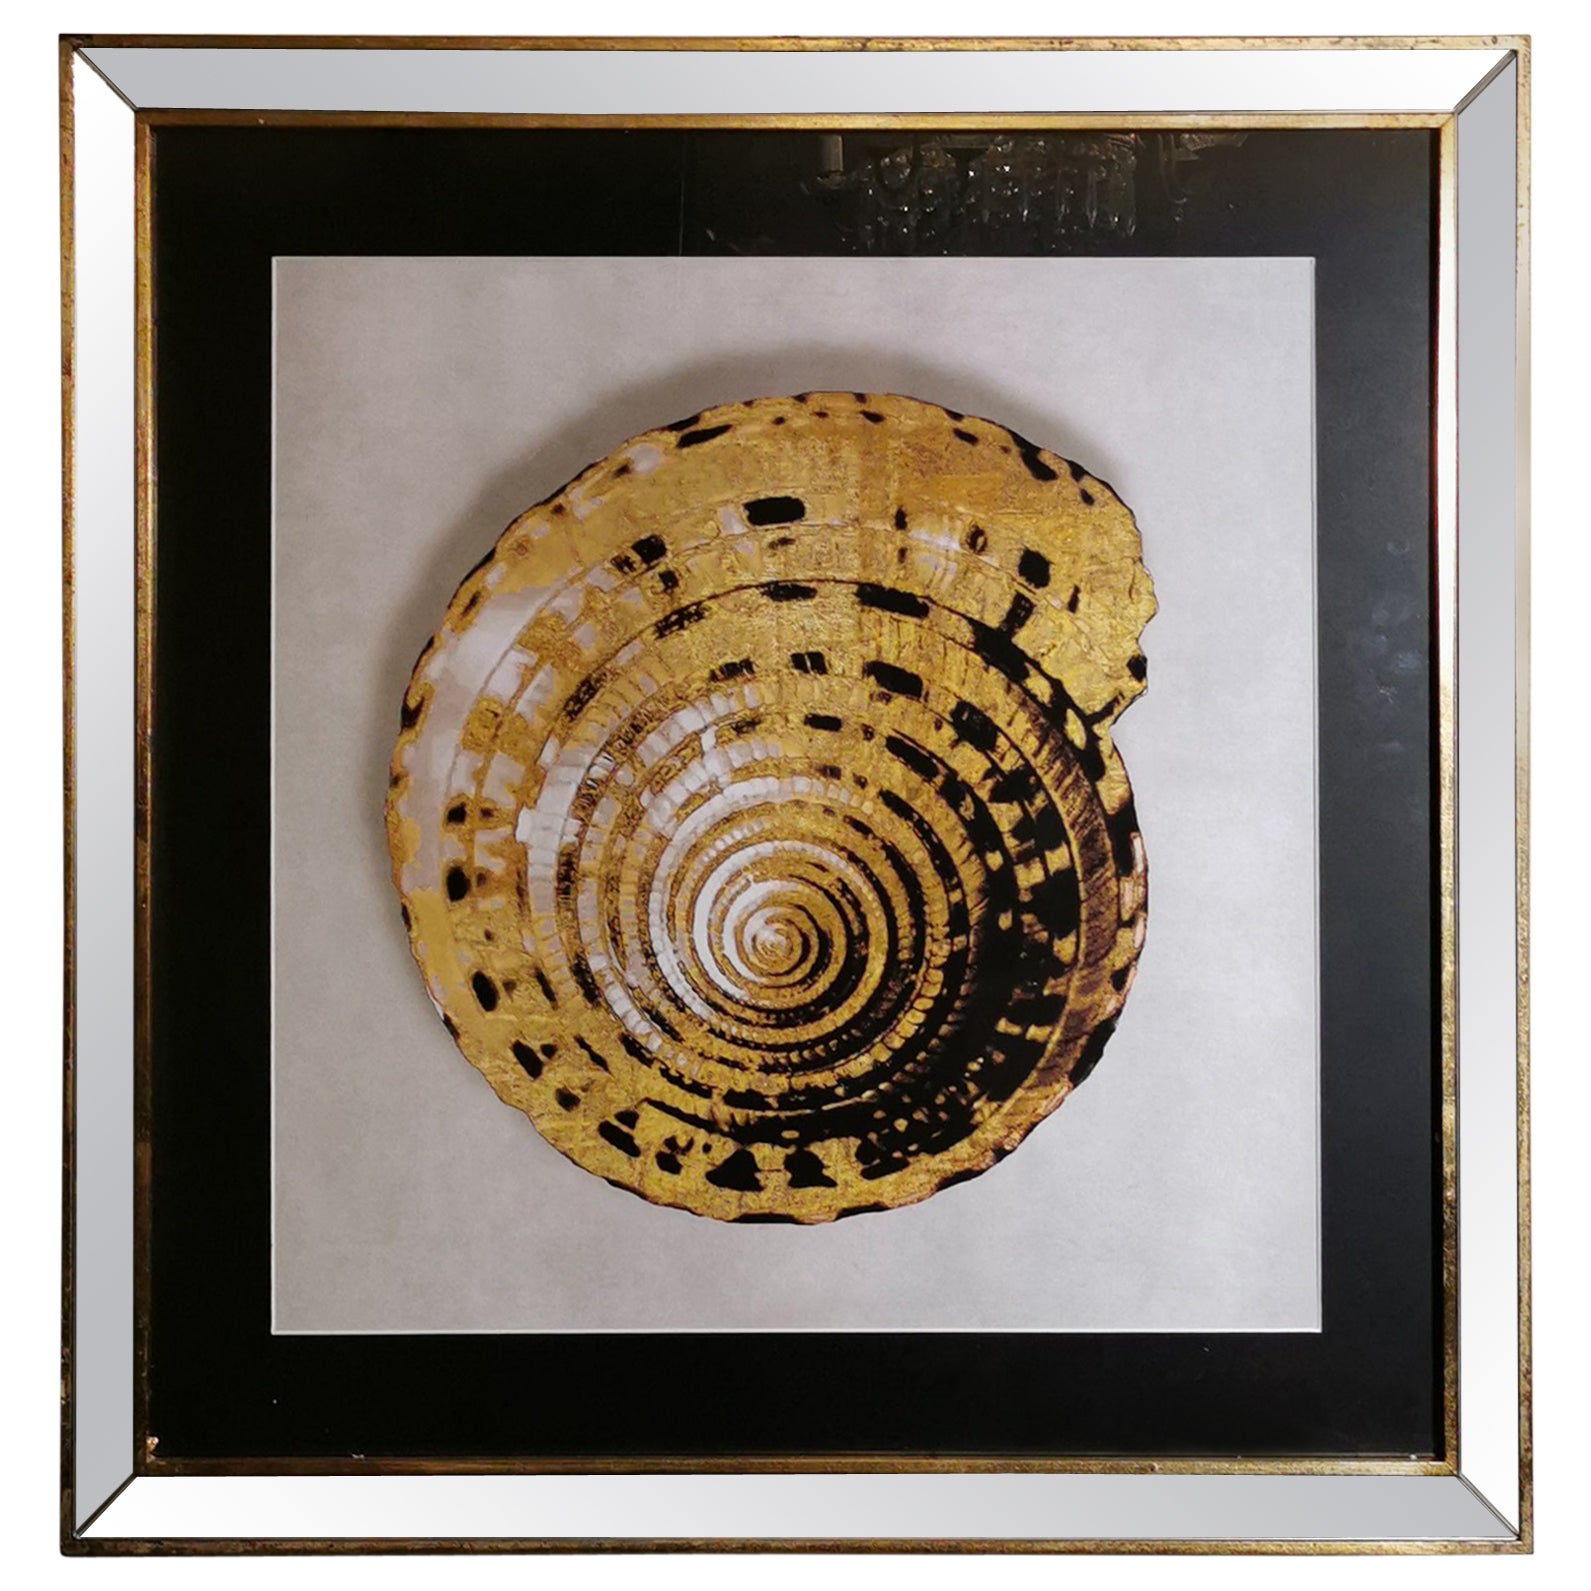 Contemporary Italian Golden Shell Print, Gilded Wood Frame with Mirror '1 of 4'